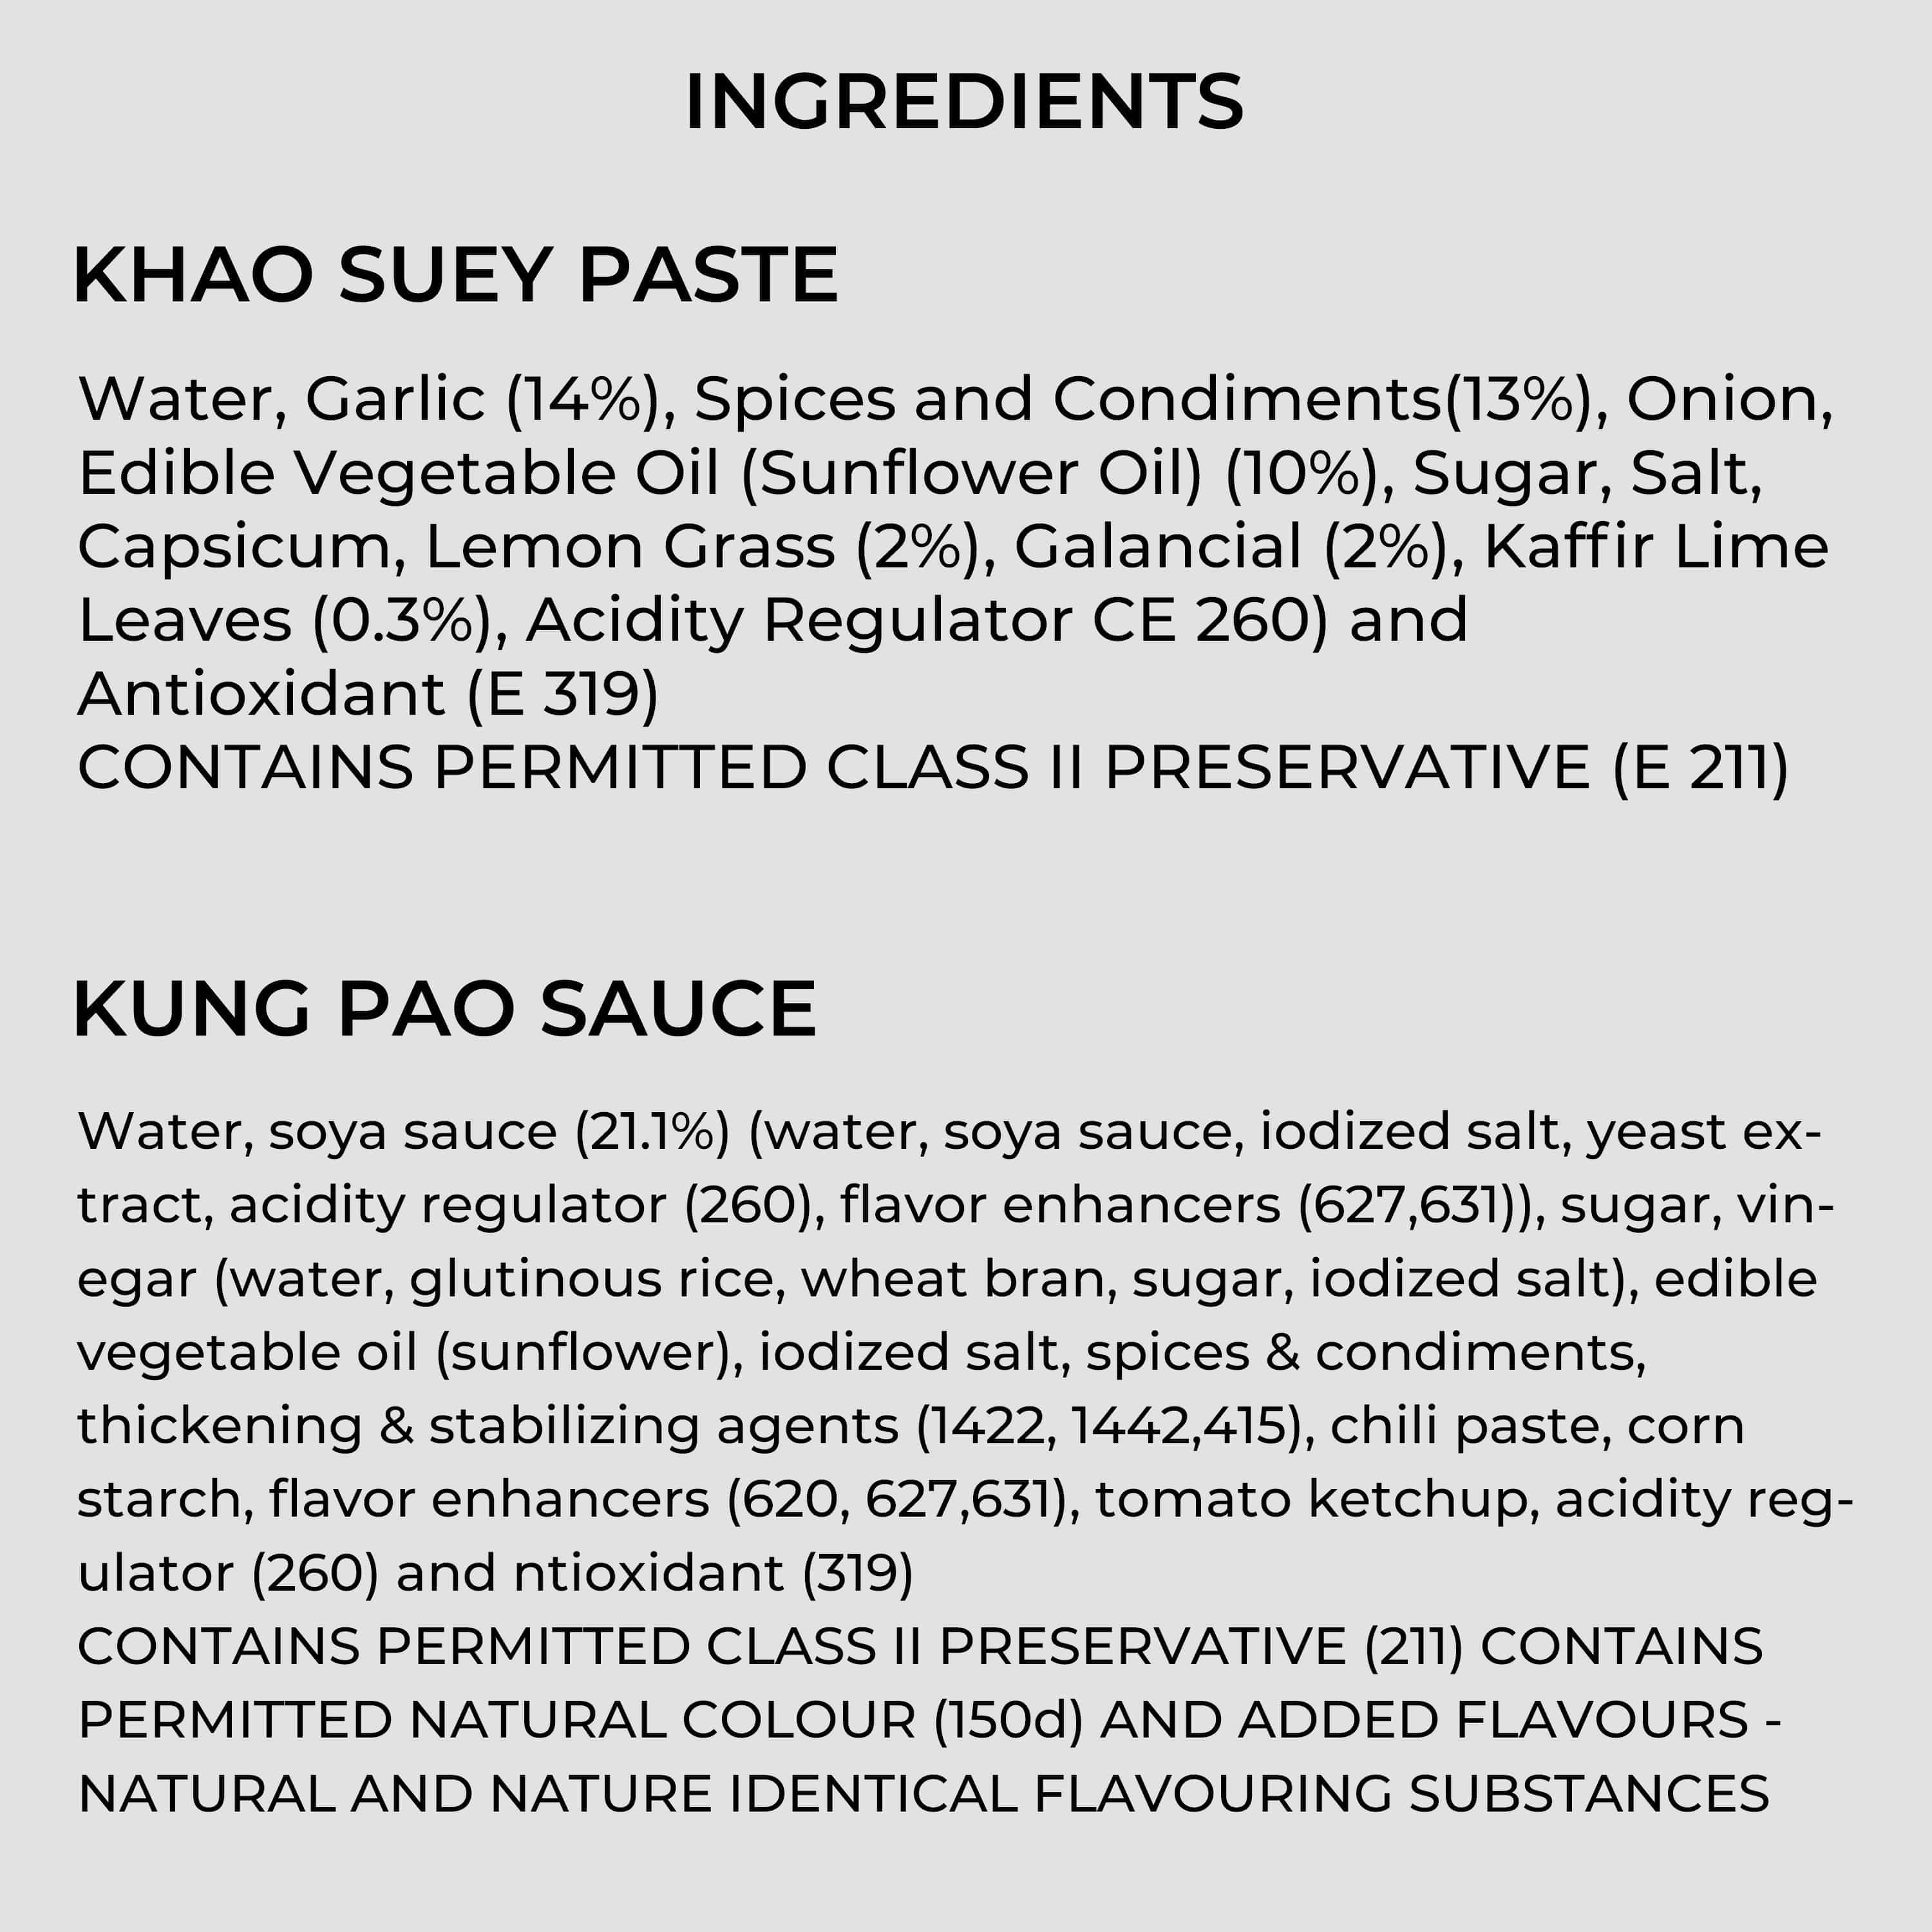 KUNG PAO SAUCE AND KHAO SUEY PASTE COMBO